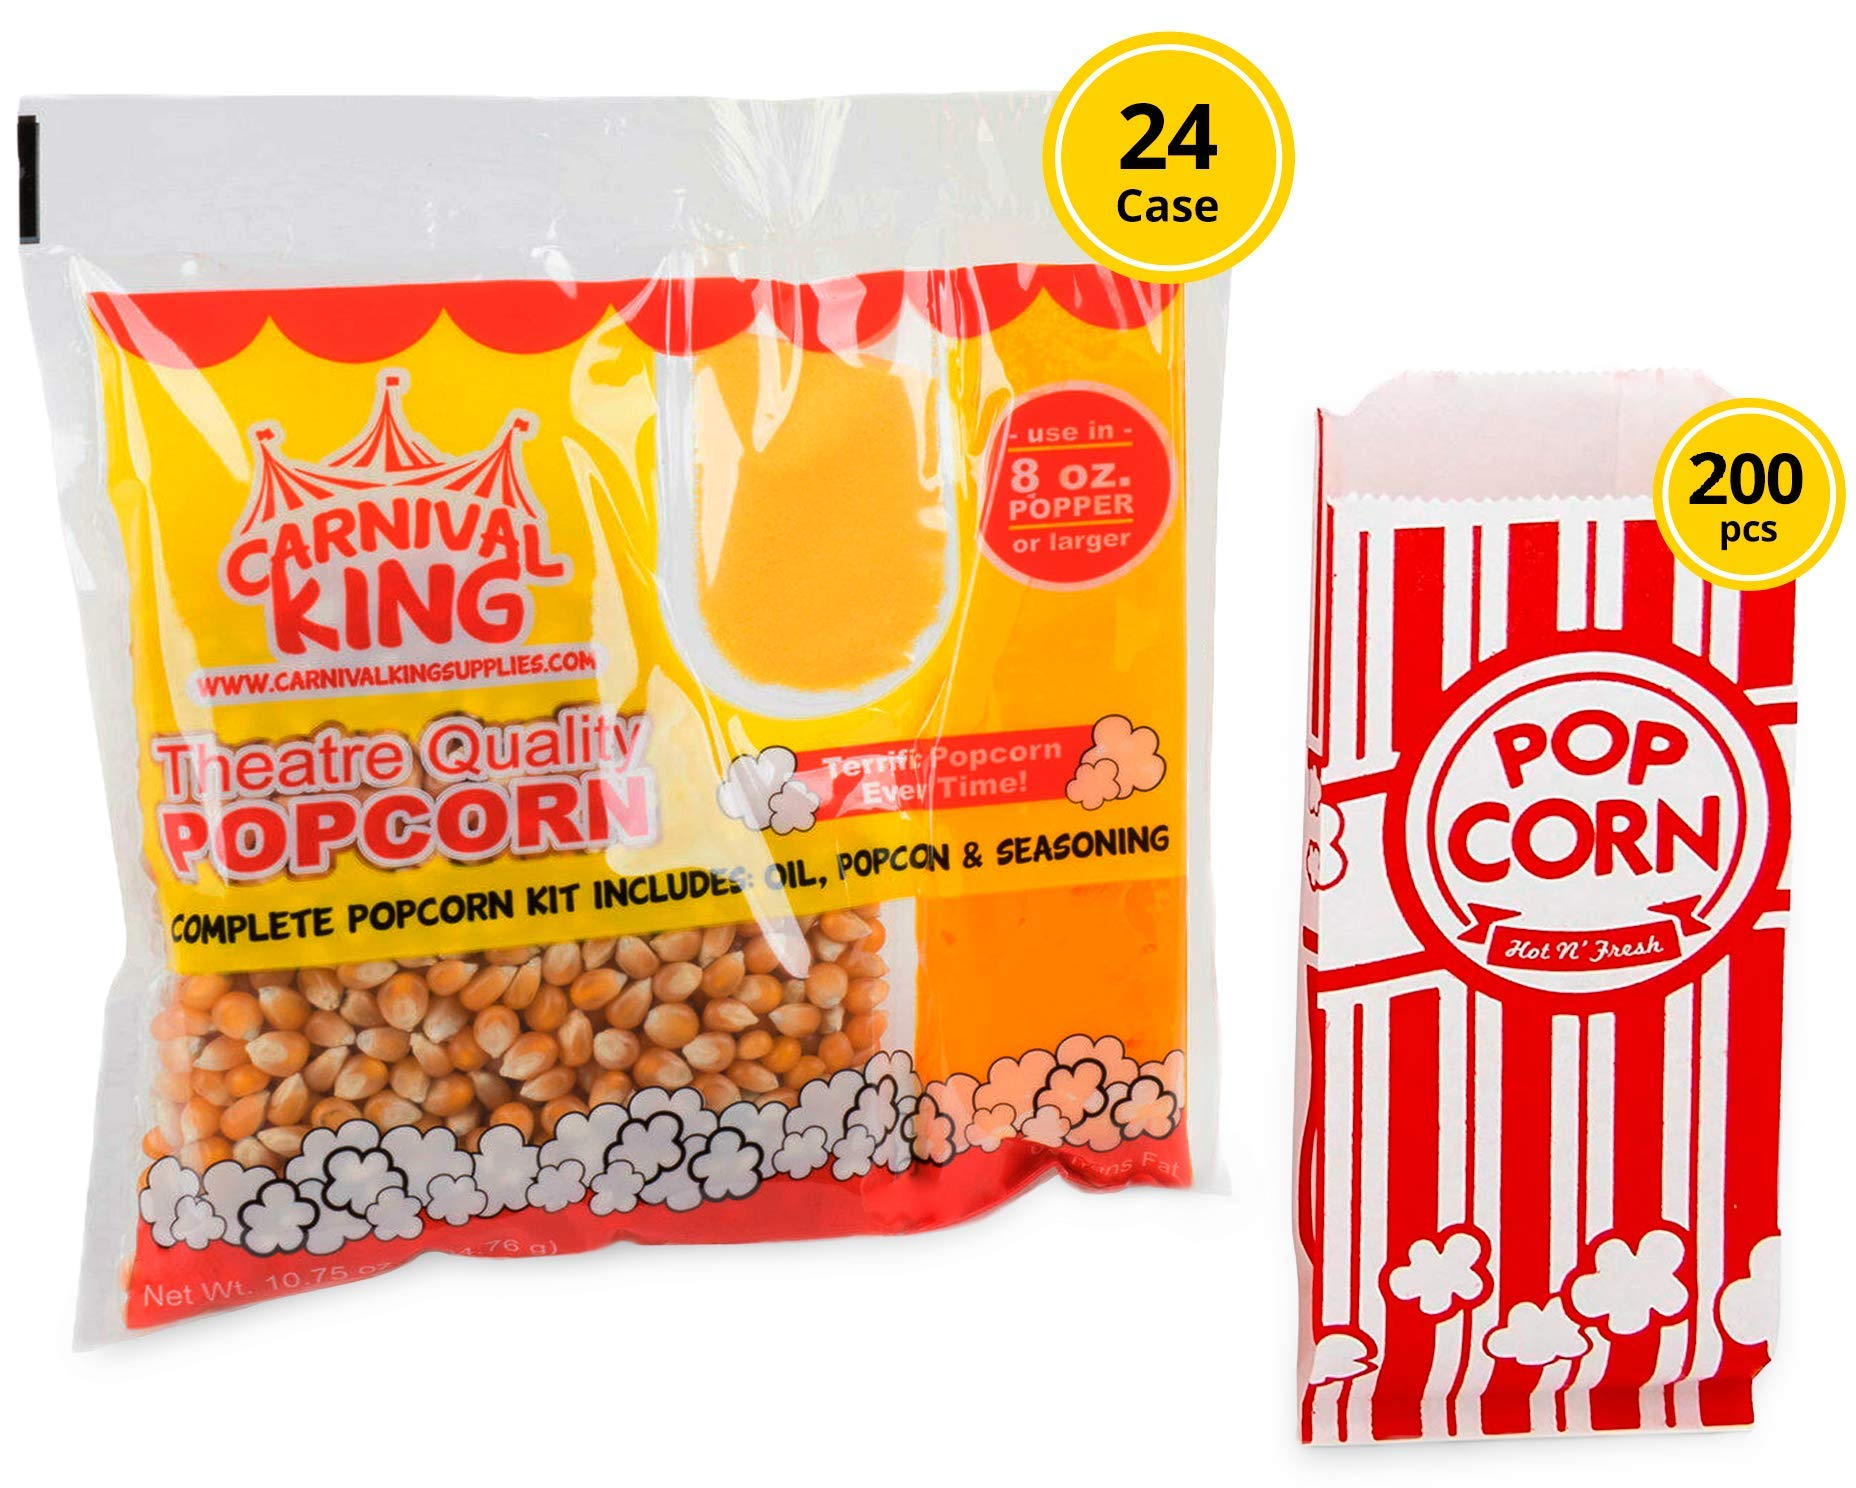 Carnival King Popcorn Kits For Popcorn Machines 8 oz - 200 Popcorn Bags And Popcorn And Oil Packets (24pcs) - w/ 4 Coasters, Ebook Bundle